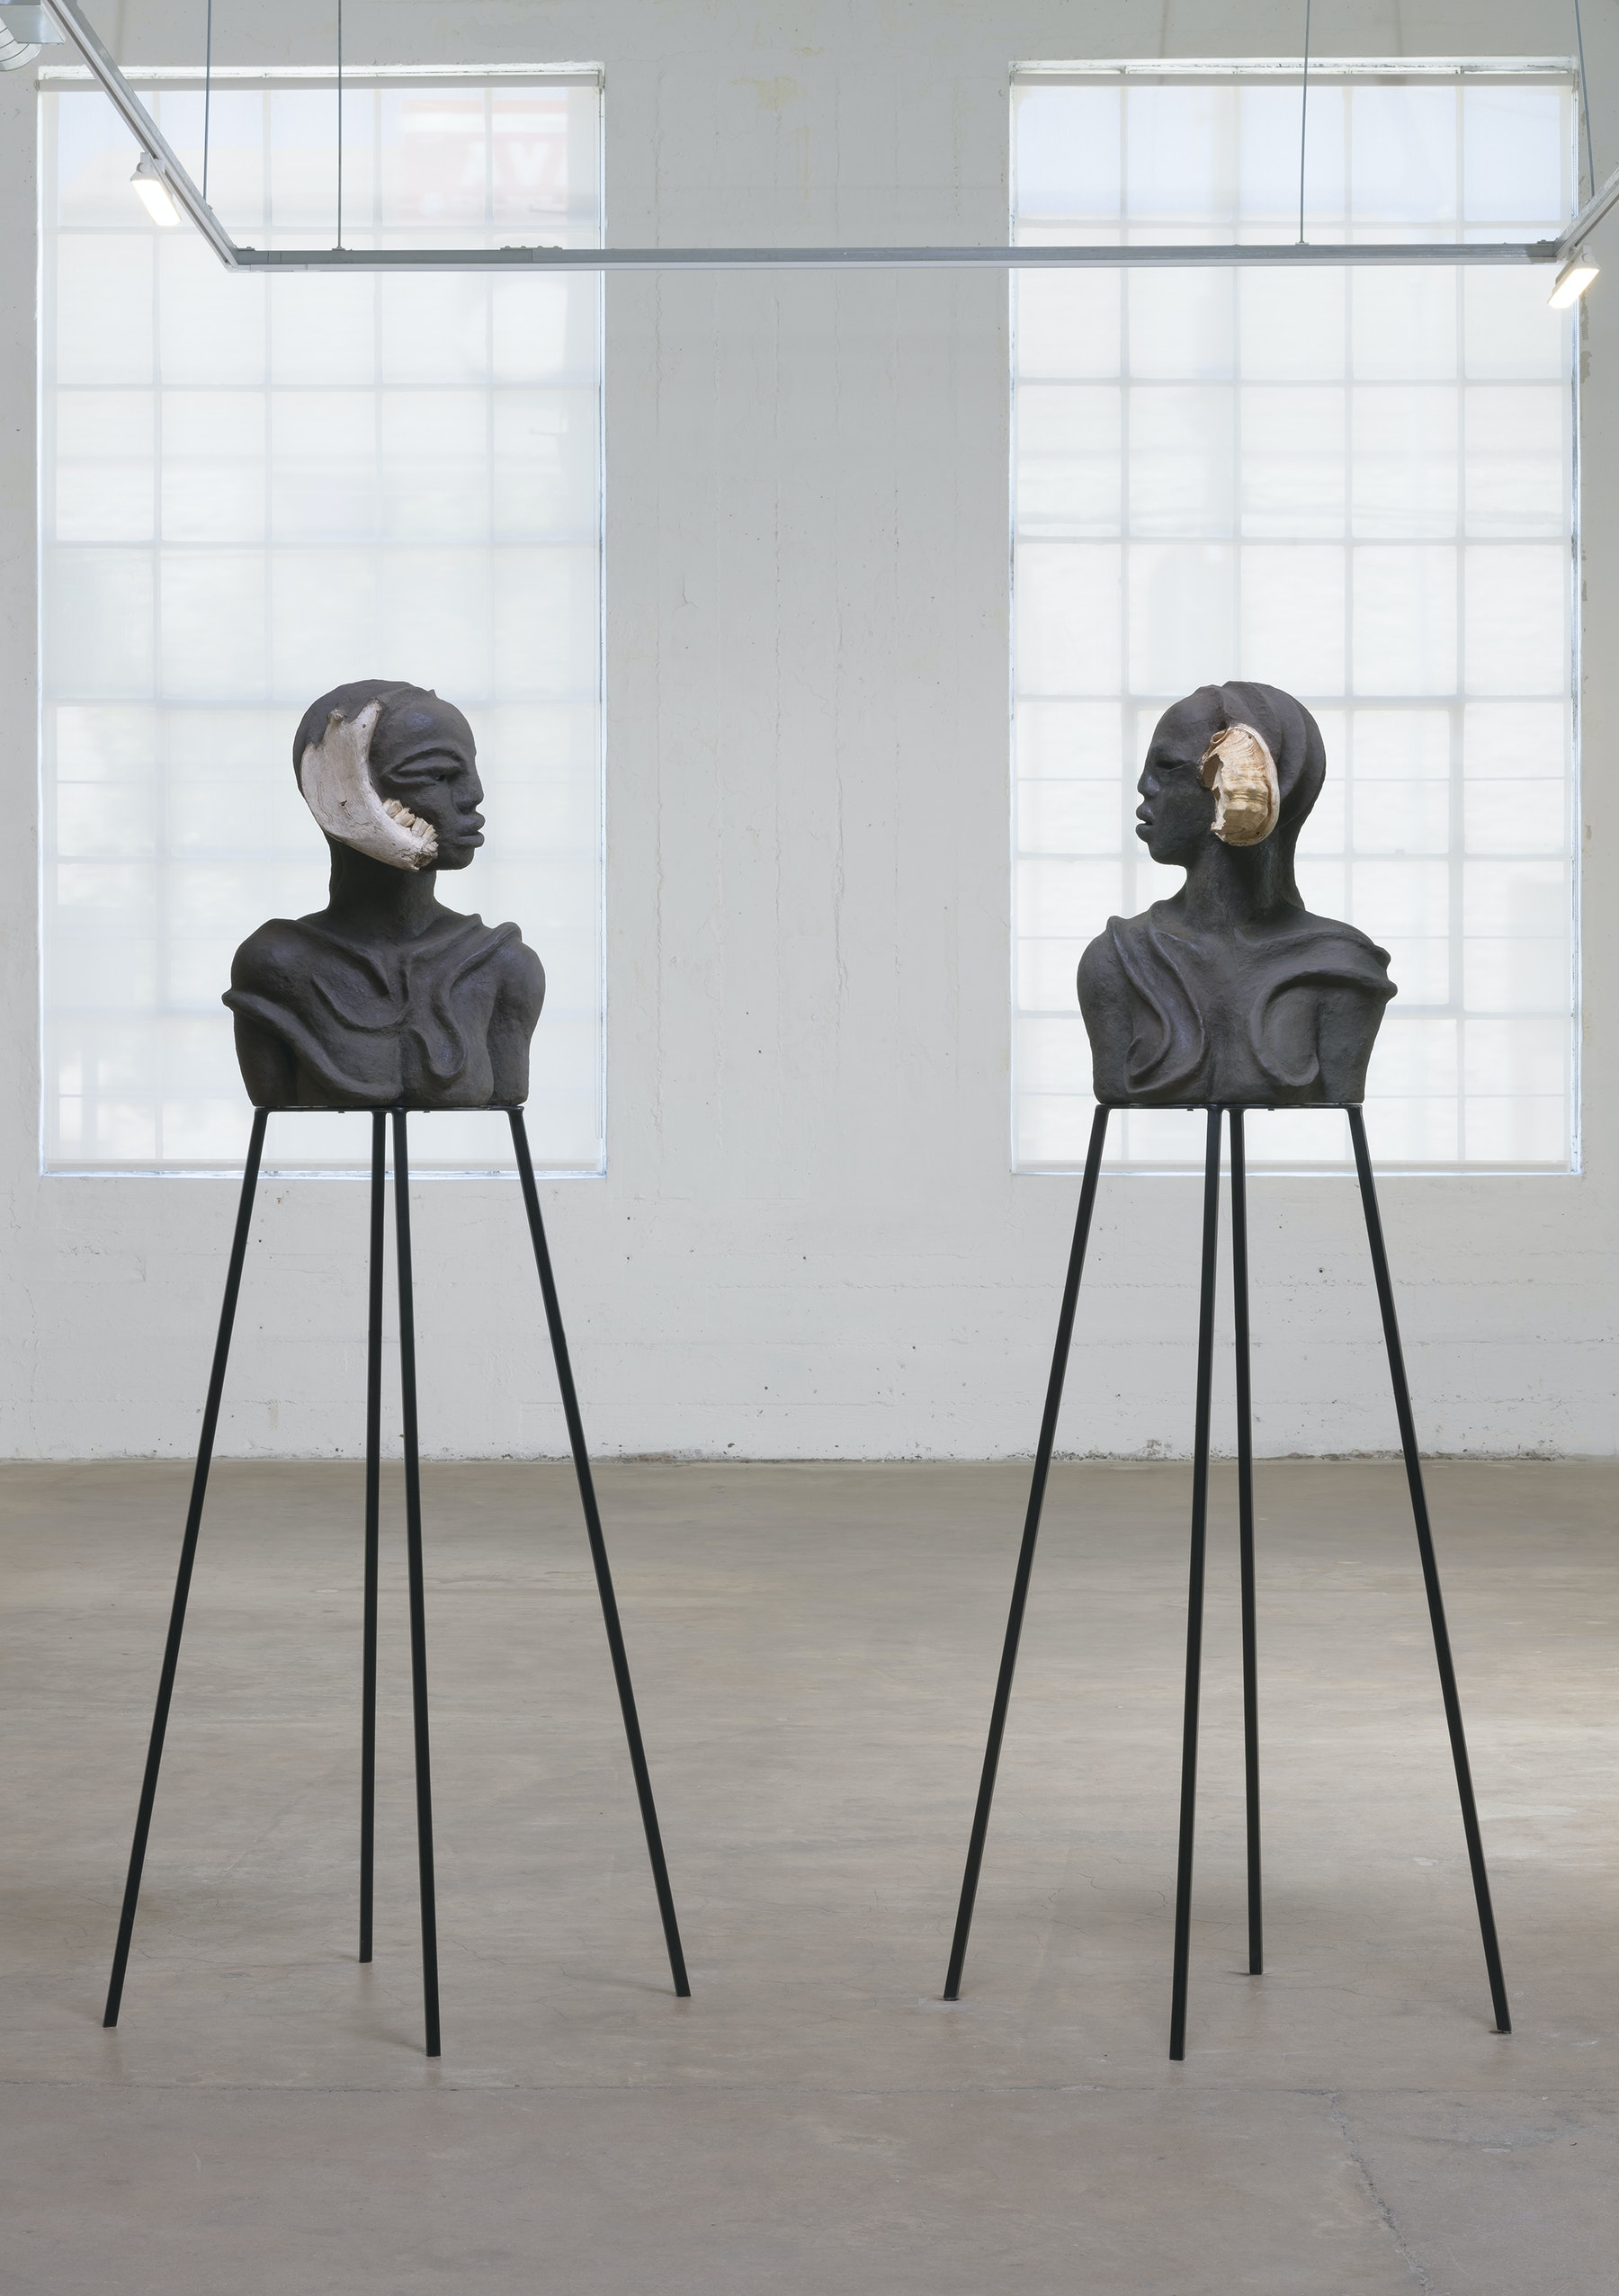 "Wangechi Mutu ""I am Speaking, Can you hear me?,"" 2020 Paper pulp, wood glue, soil, charcoal, bone, feathers, shells, wood, metal stands 22 1/8 x 32 1/2 x 14 1/8 in. (56 x 82.5 x 36 cm) (overall) Inventory #MUT505 Courtesy of the artist and Vielmetter Los Angeles Photo credit: Robert Wedemeyer"